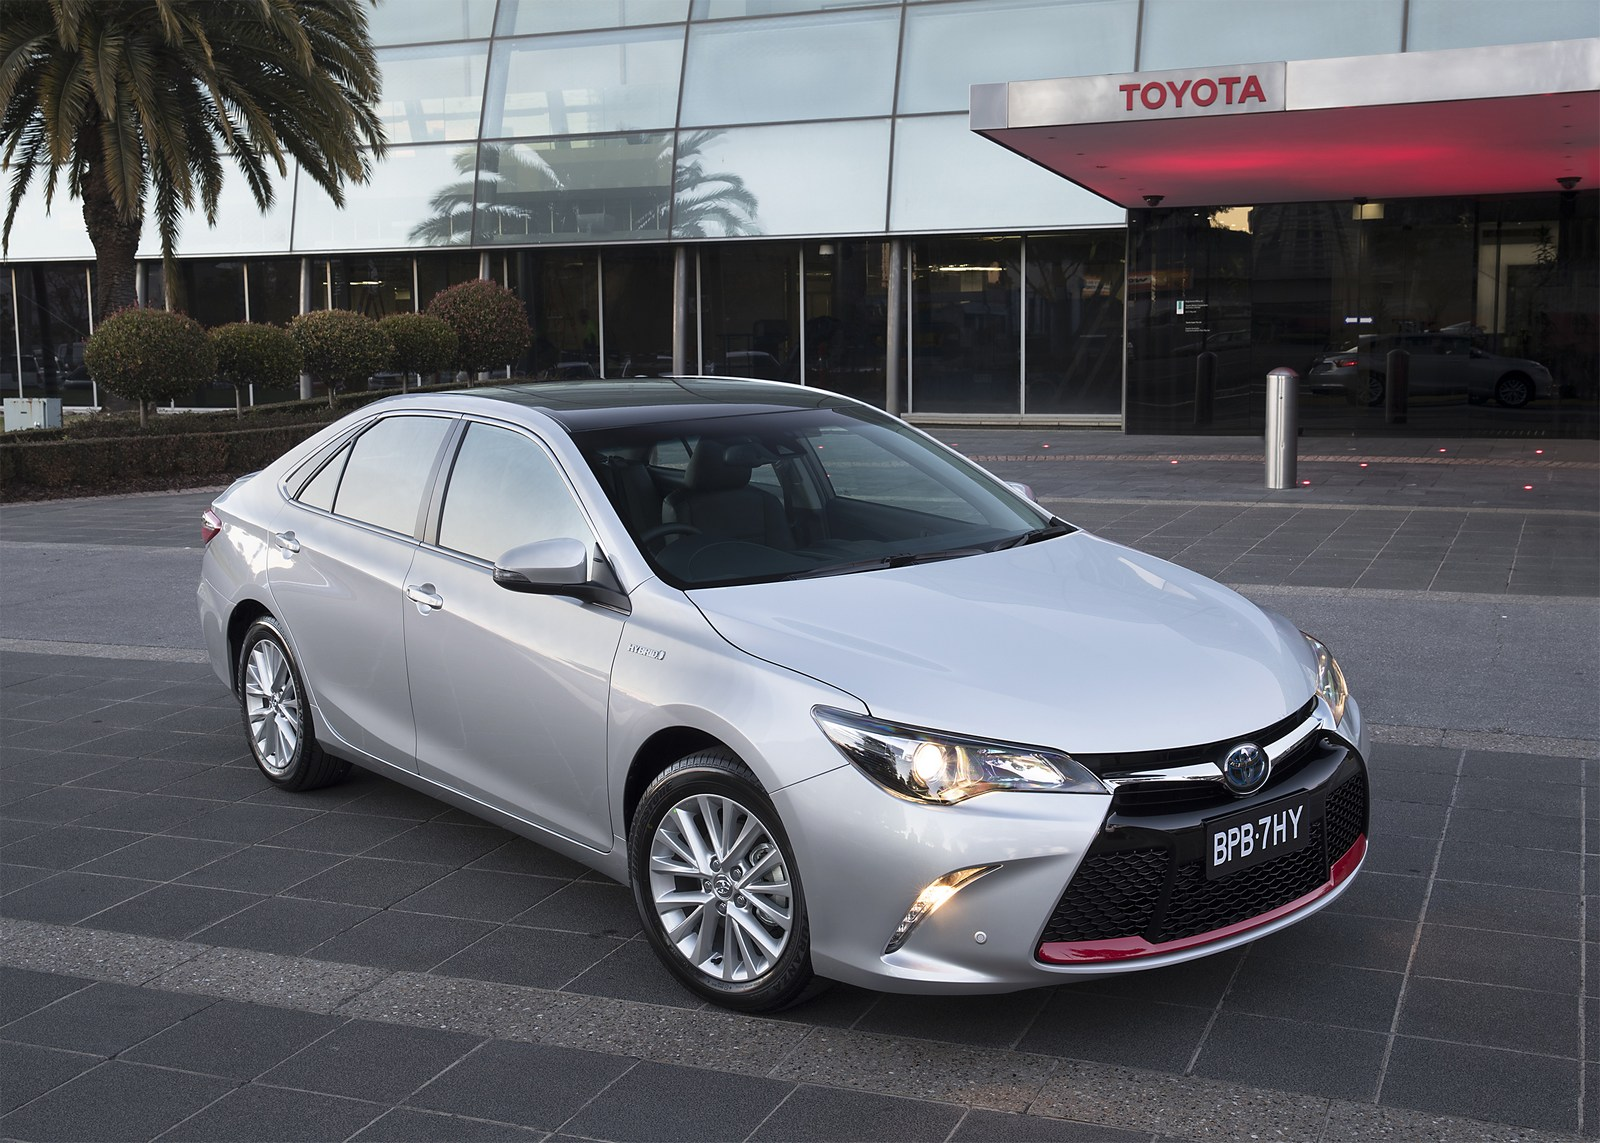 Toyota camry commemorative edition australian model